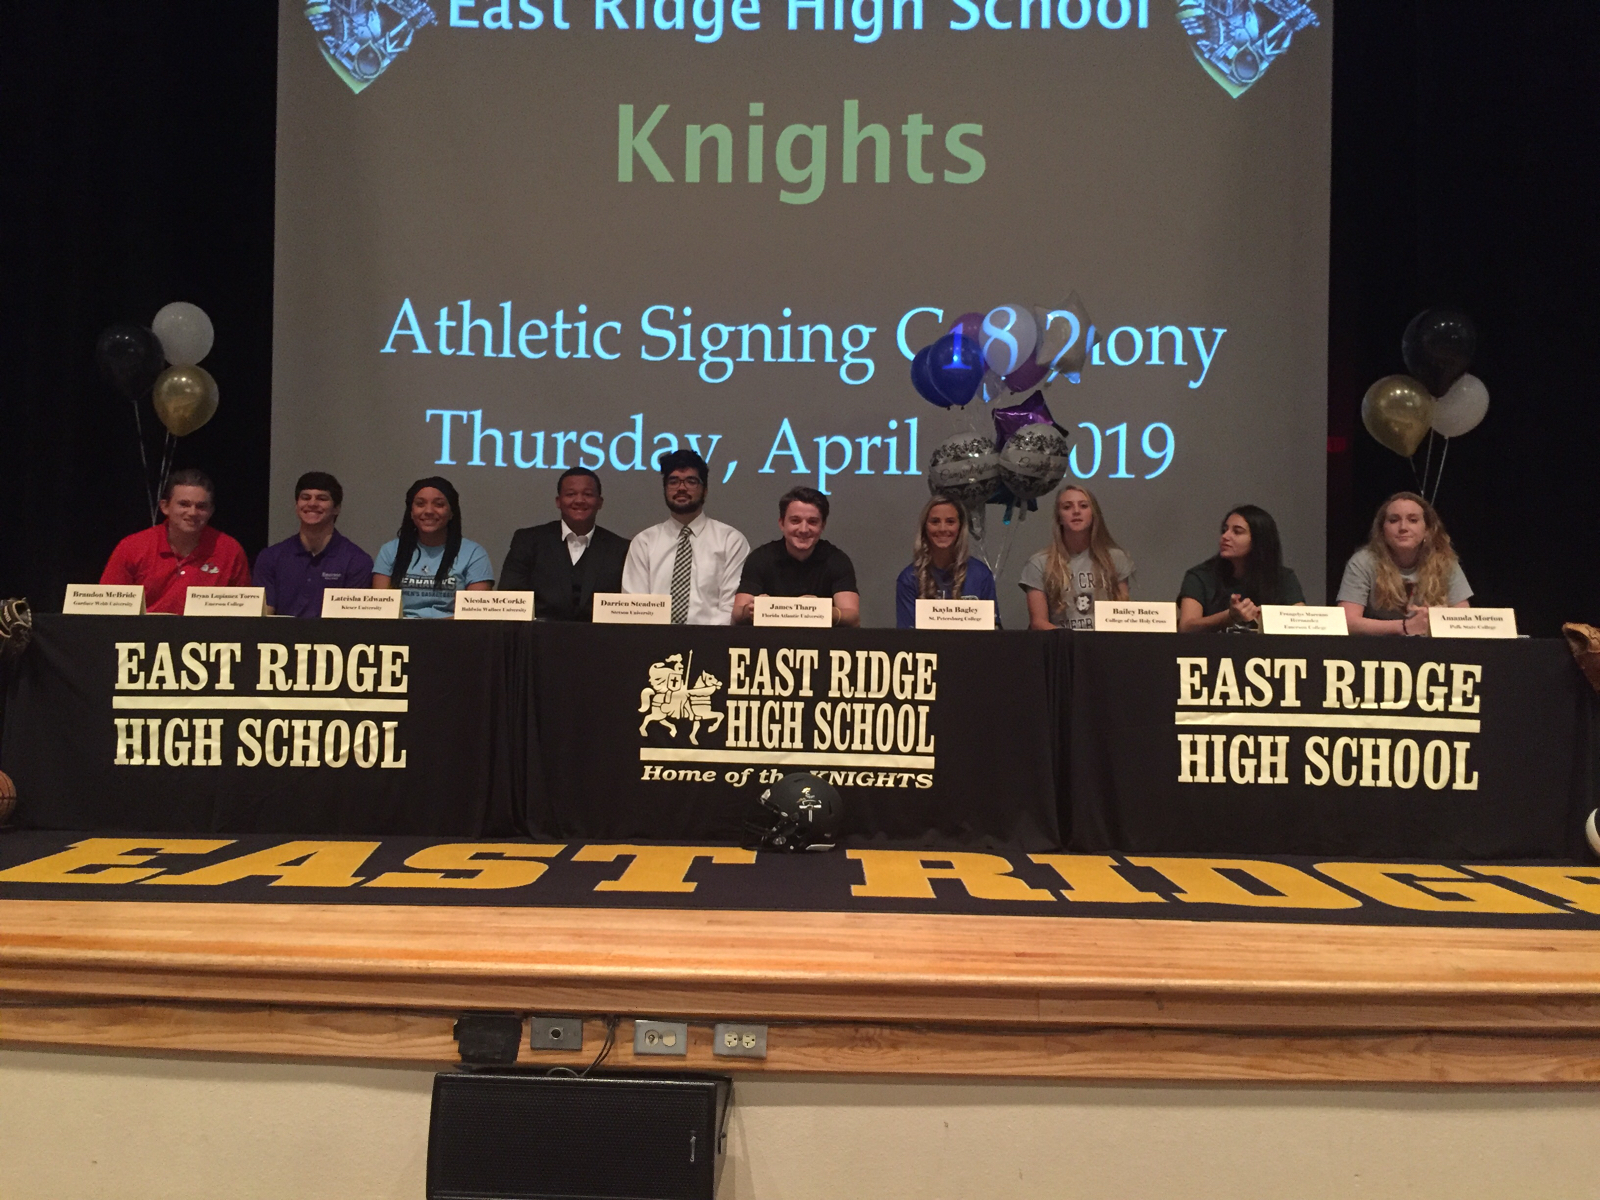 Ten Knights sign college letter of intents